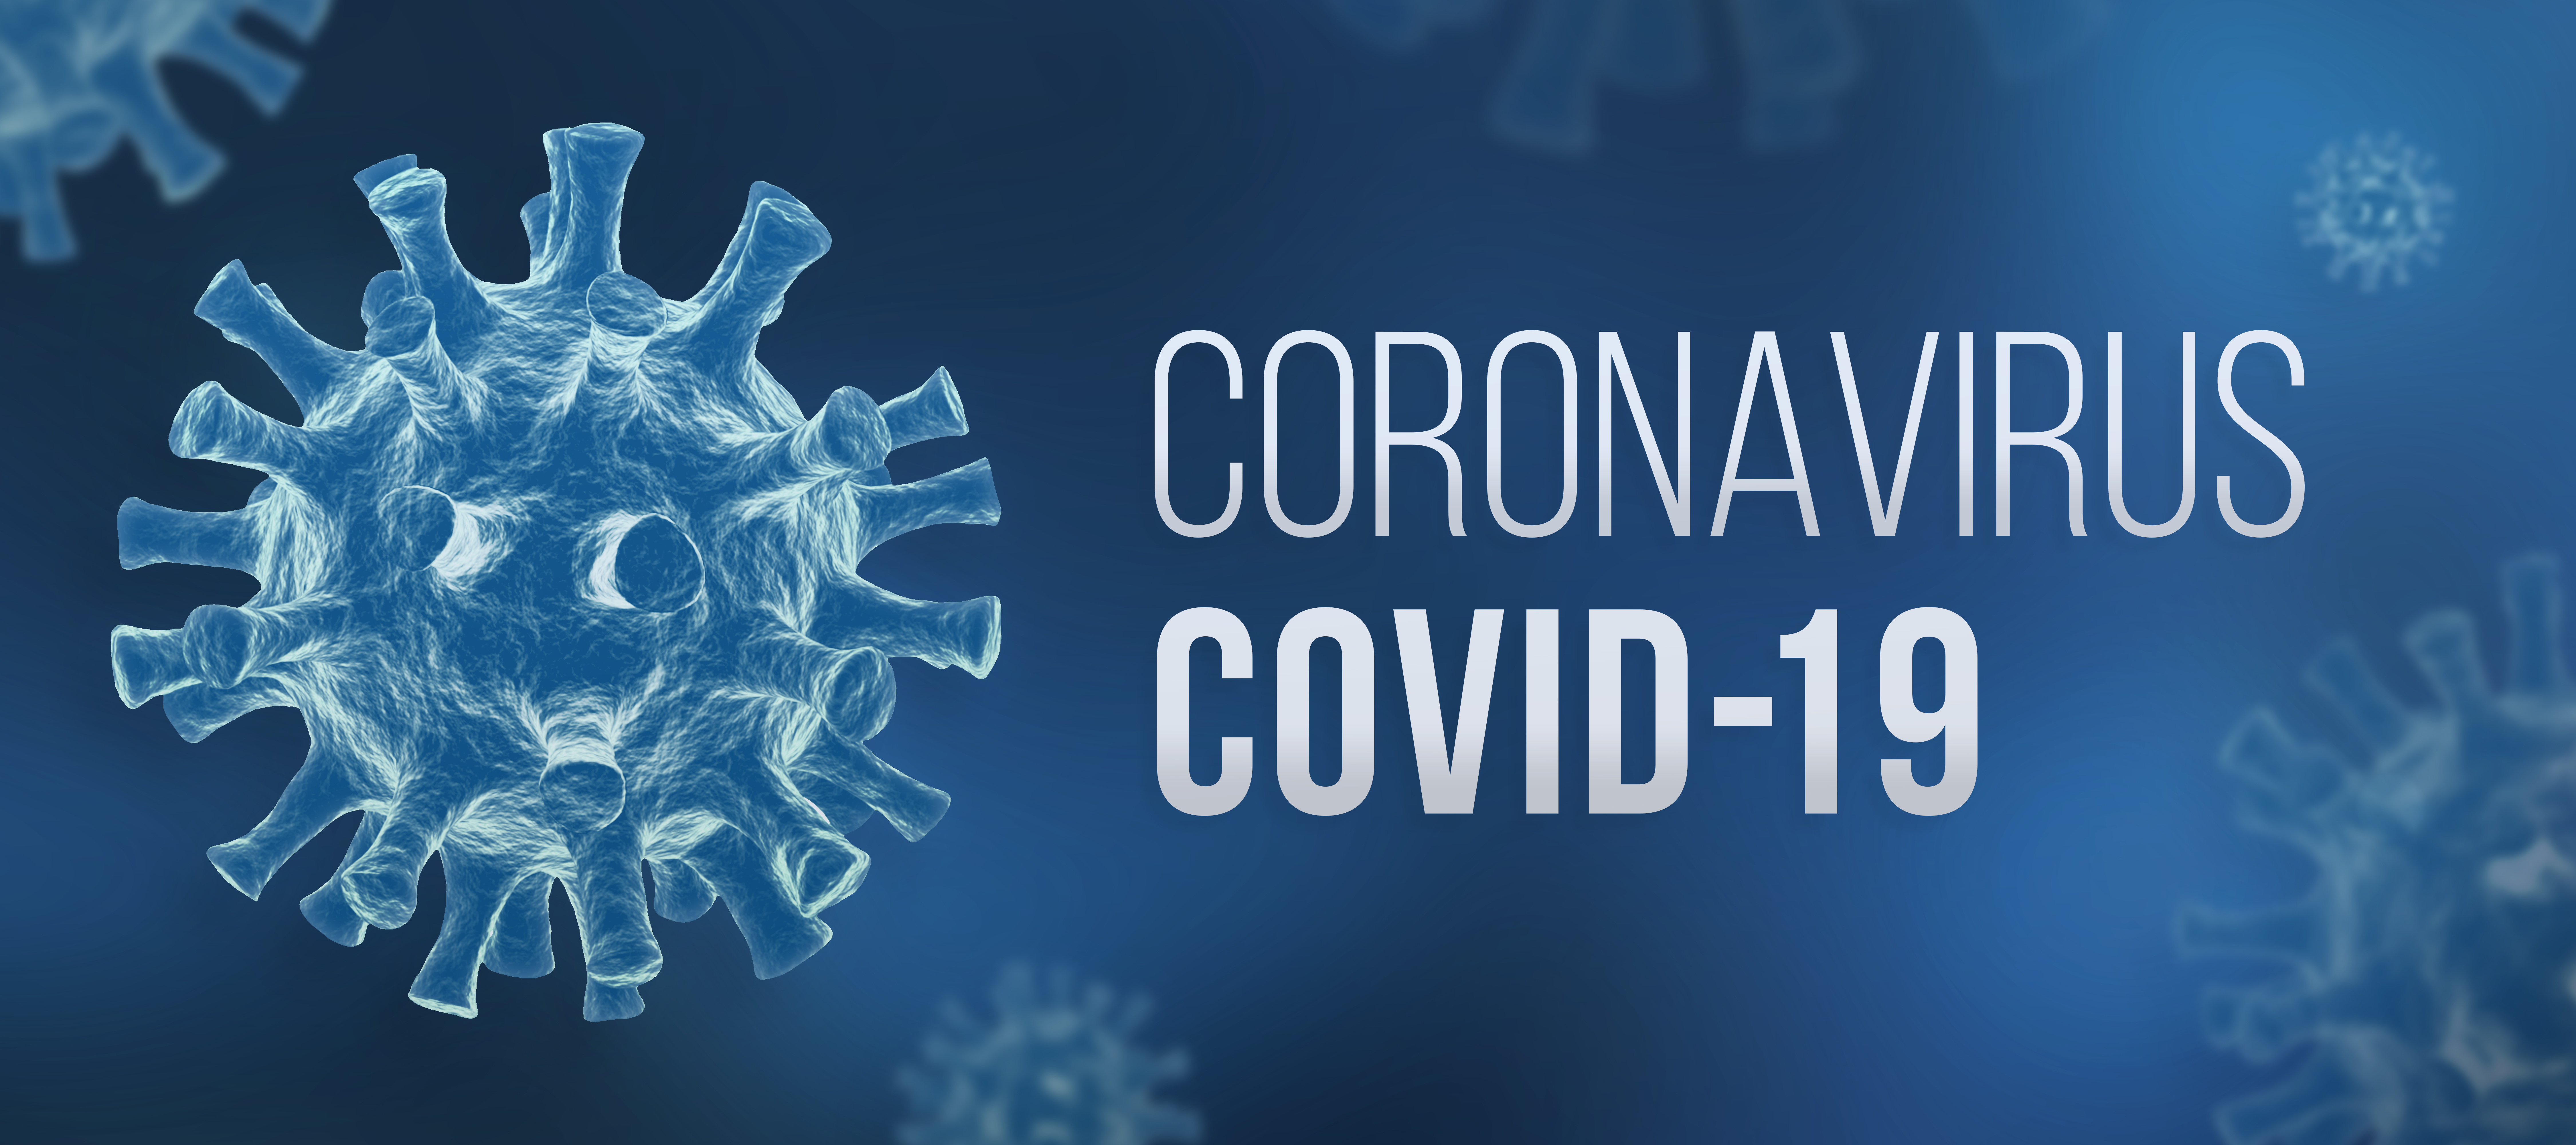 New Safety Measures & Resources for Cannabis Businesses Regarding COVID-19 Response